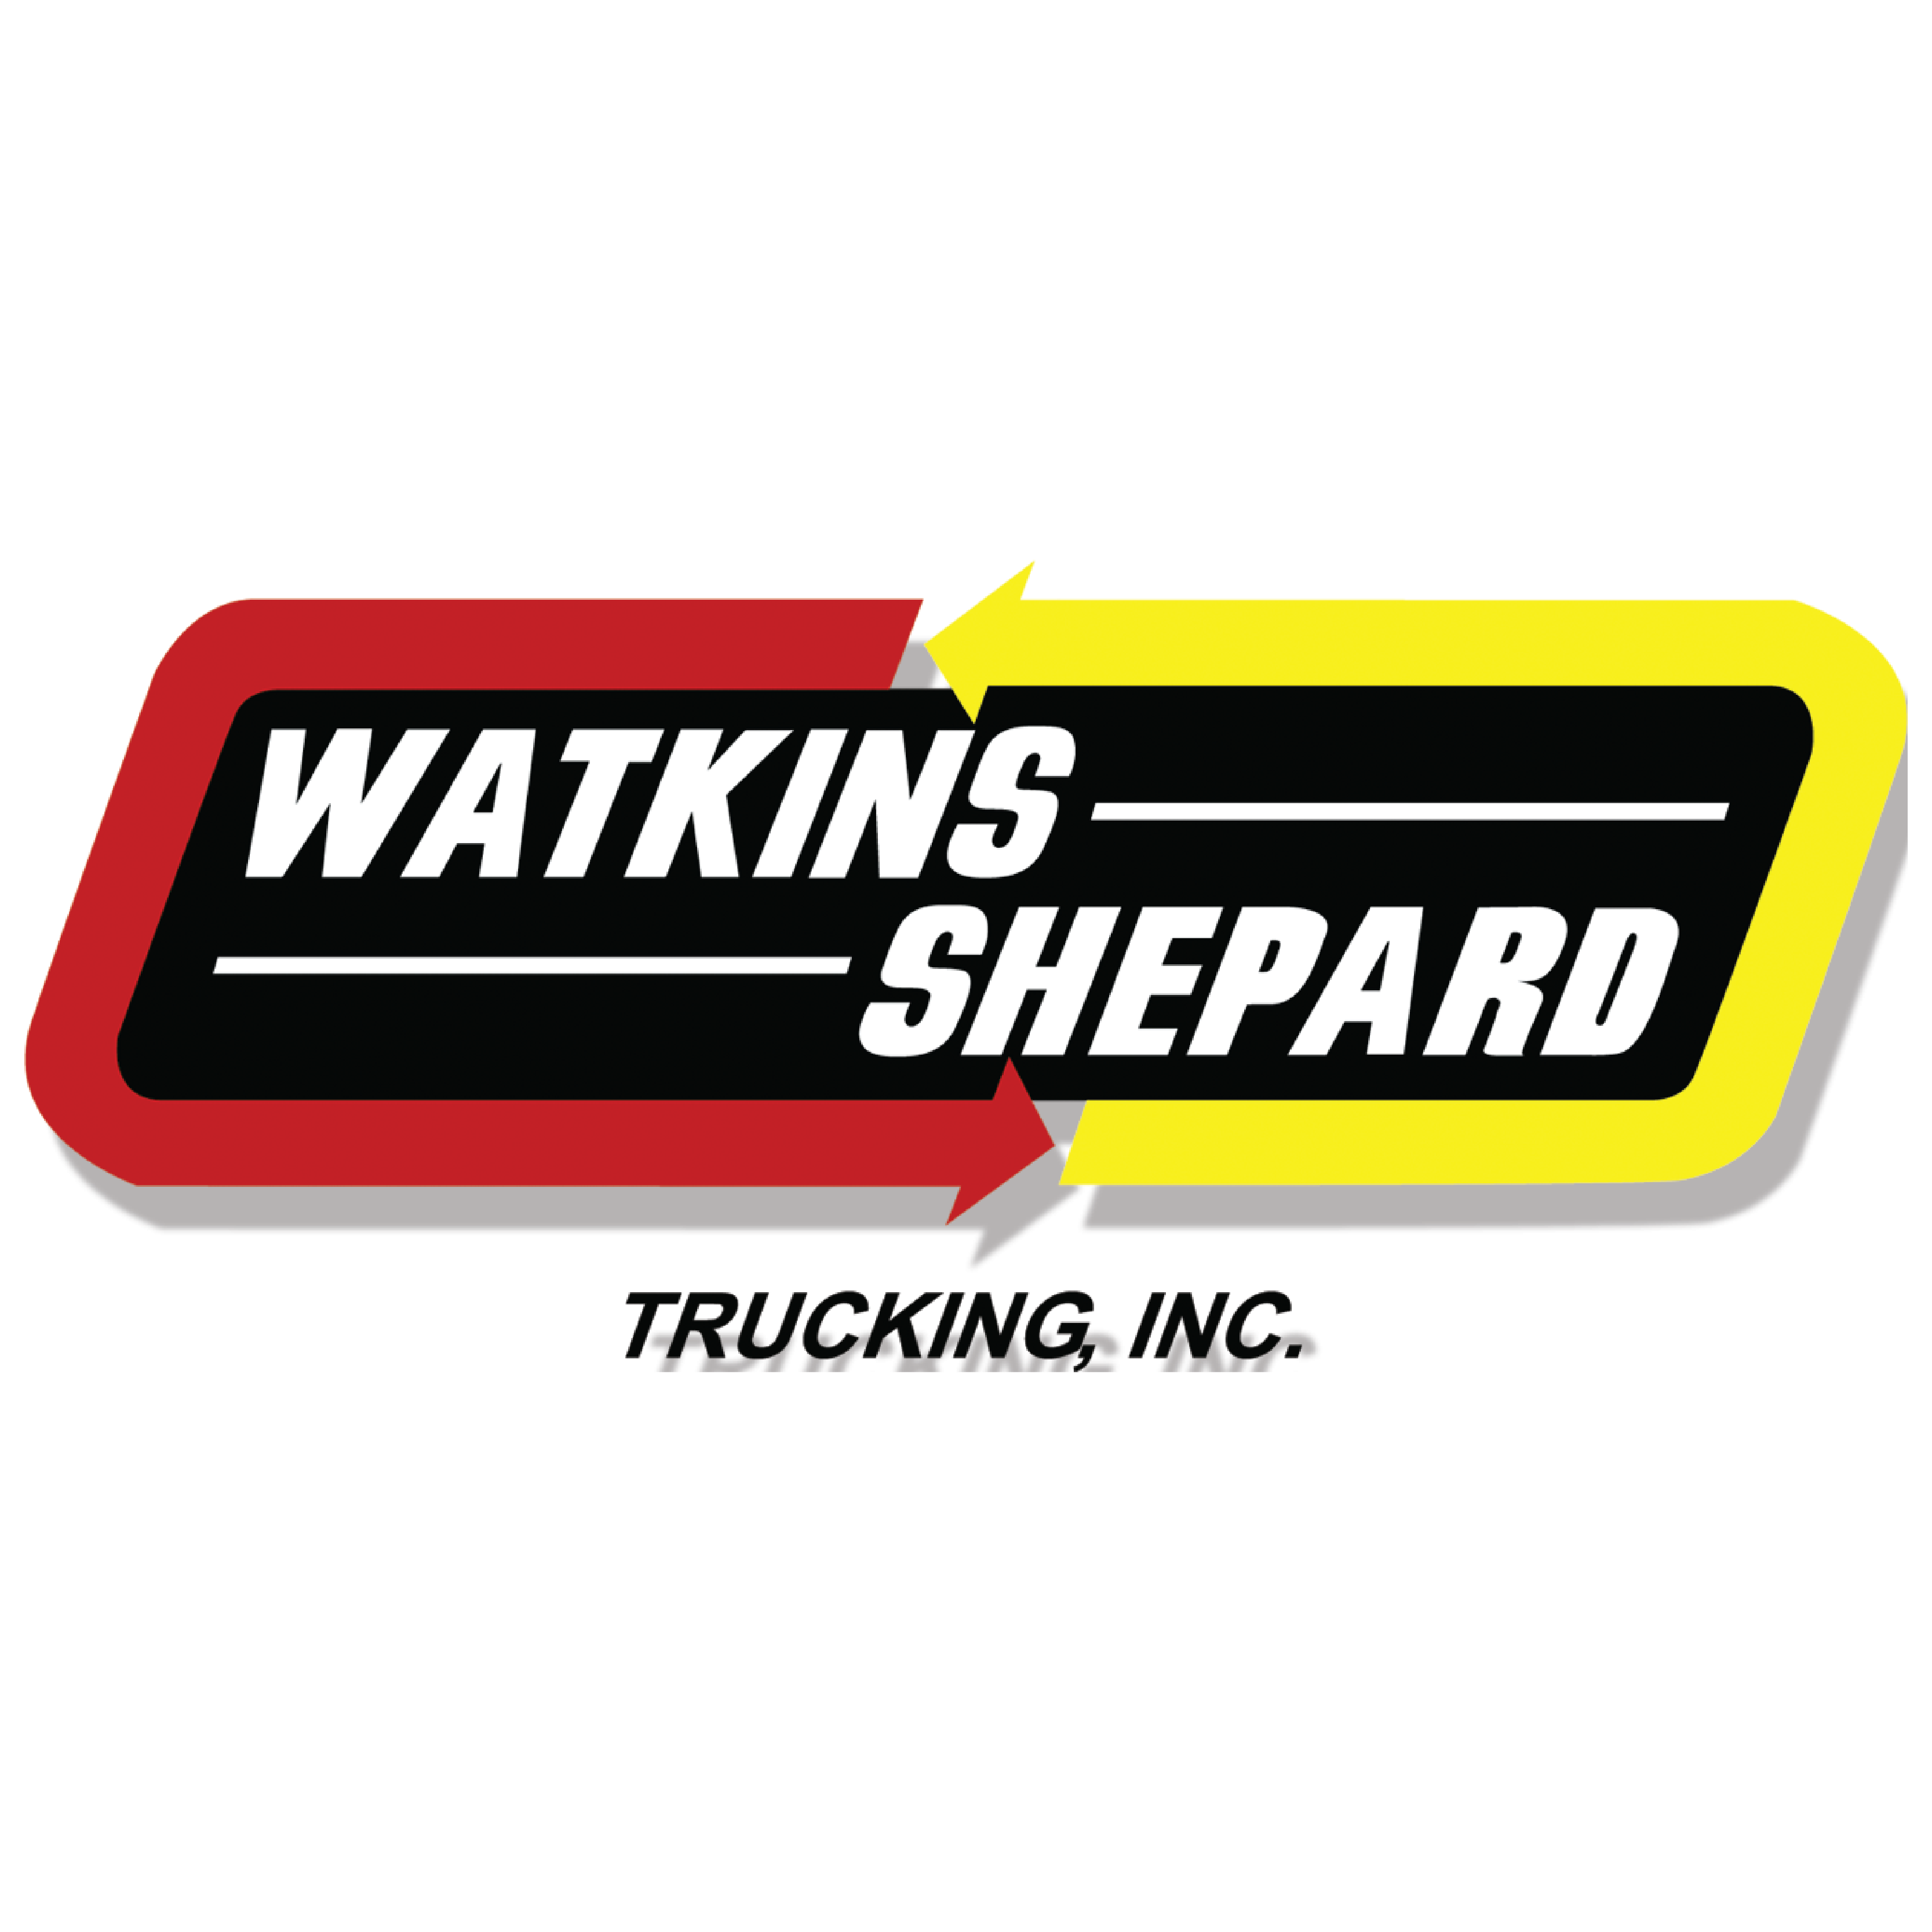 Watkins Shepard Shipedge Integration